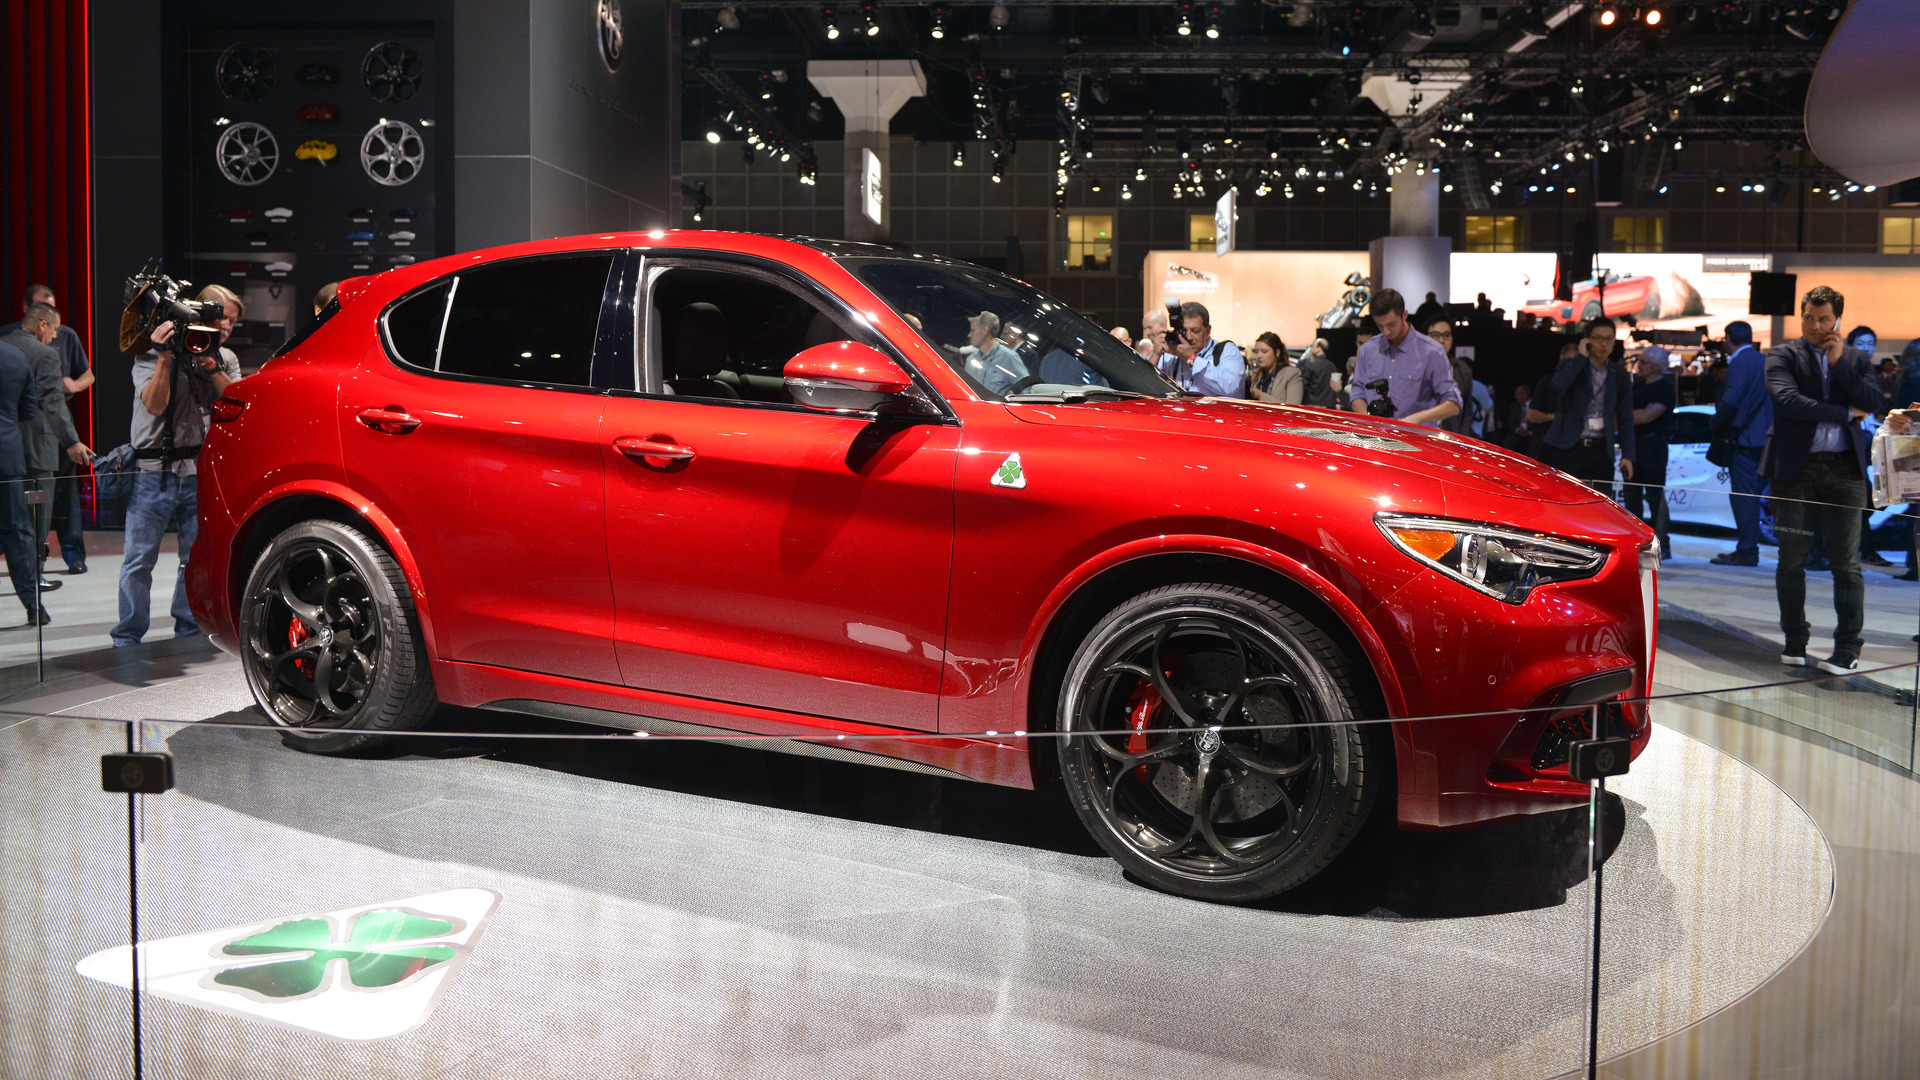 2018 alfa romeo stelvio officially unveiled and in quadrifoglio trim the. Black Bedroom Furniture Sets. Home Design Ideas